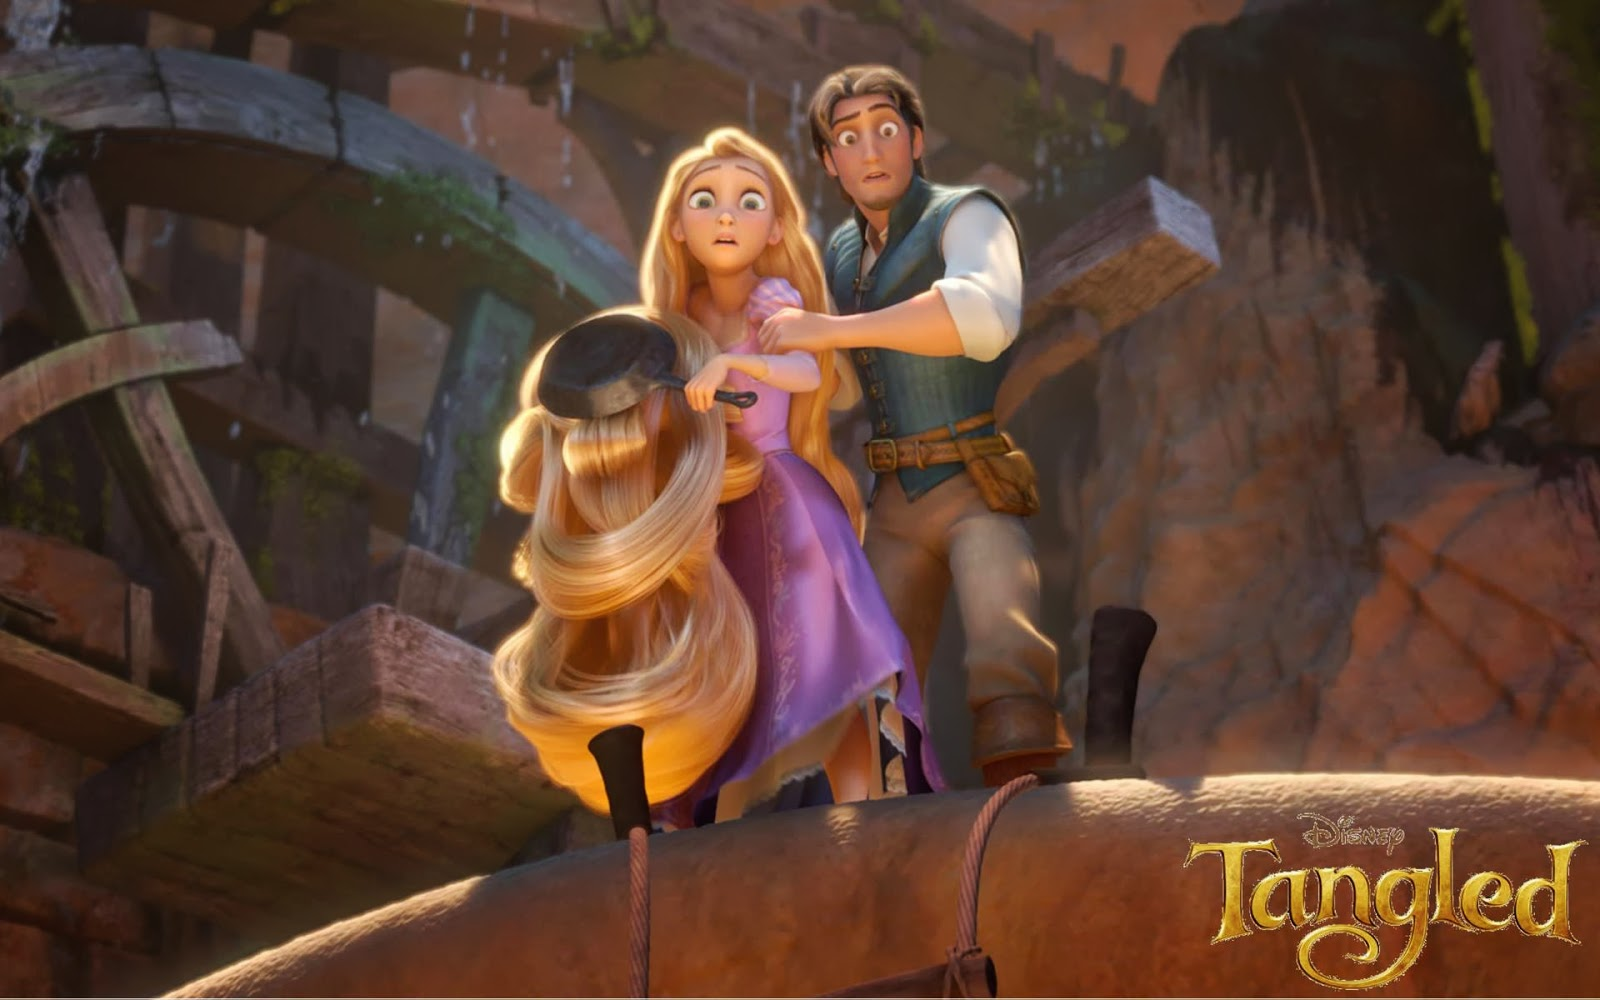 Desktop Wallpaper Disney Tangled Wallpaper 1600x1000